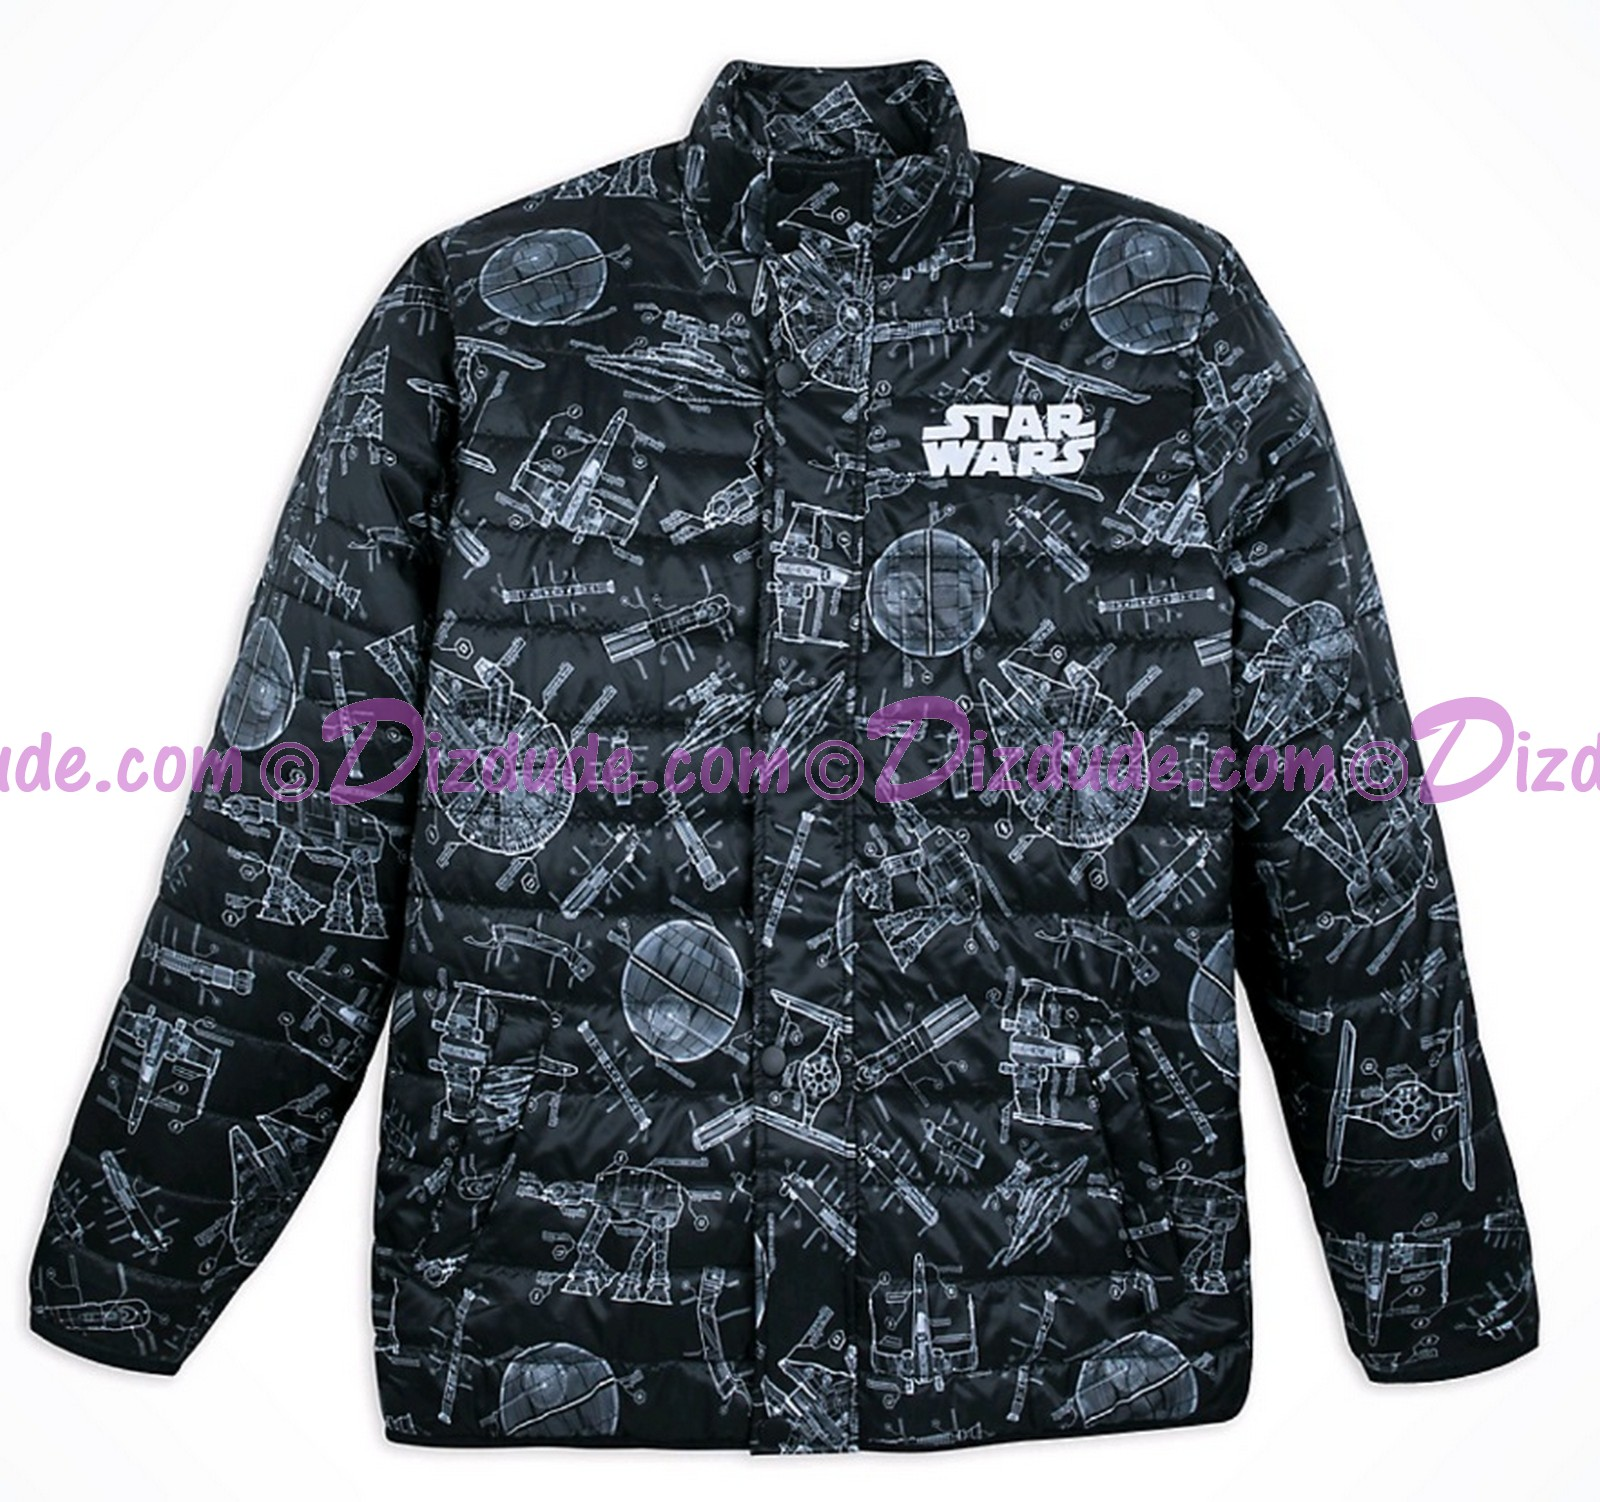 Disney Star Wars Adult Blueprint Jacket © Dizdude.com